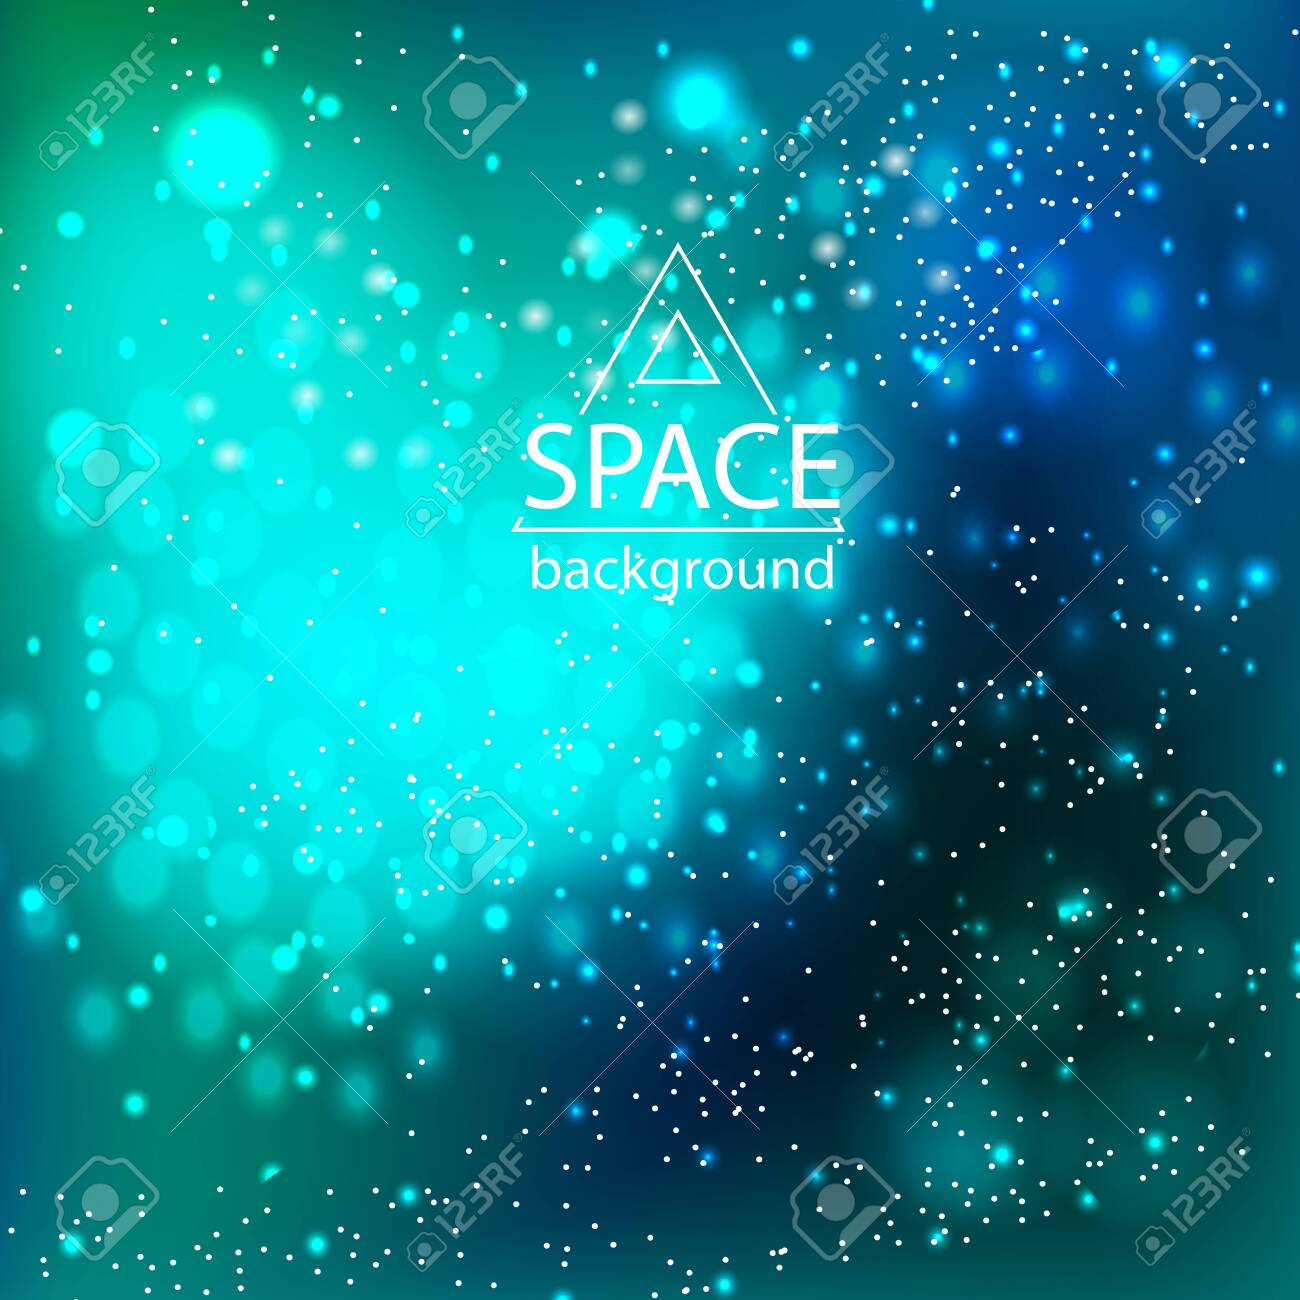 Abstract space galaxy background with cosmic light and stars - 135025811